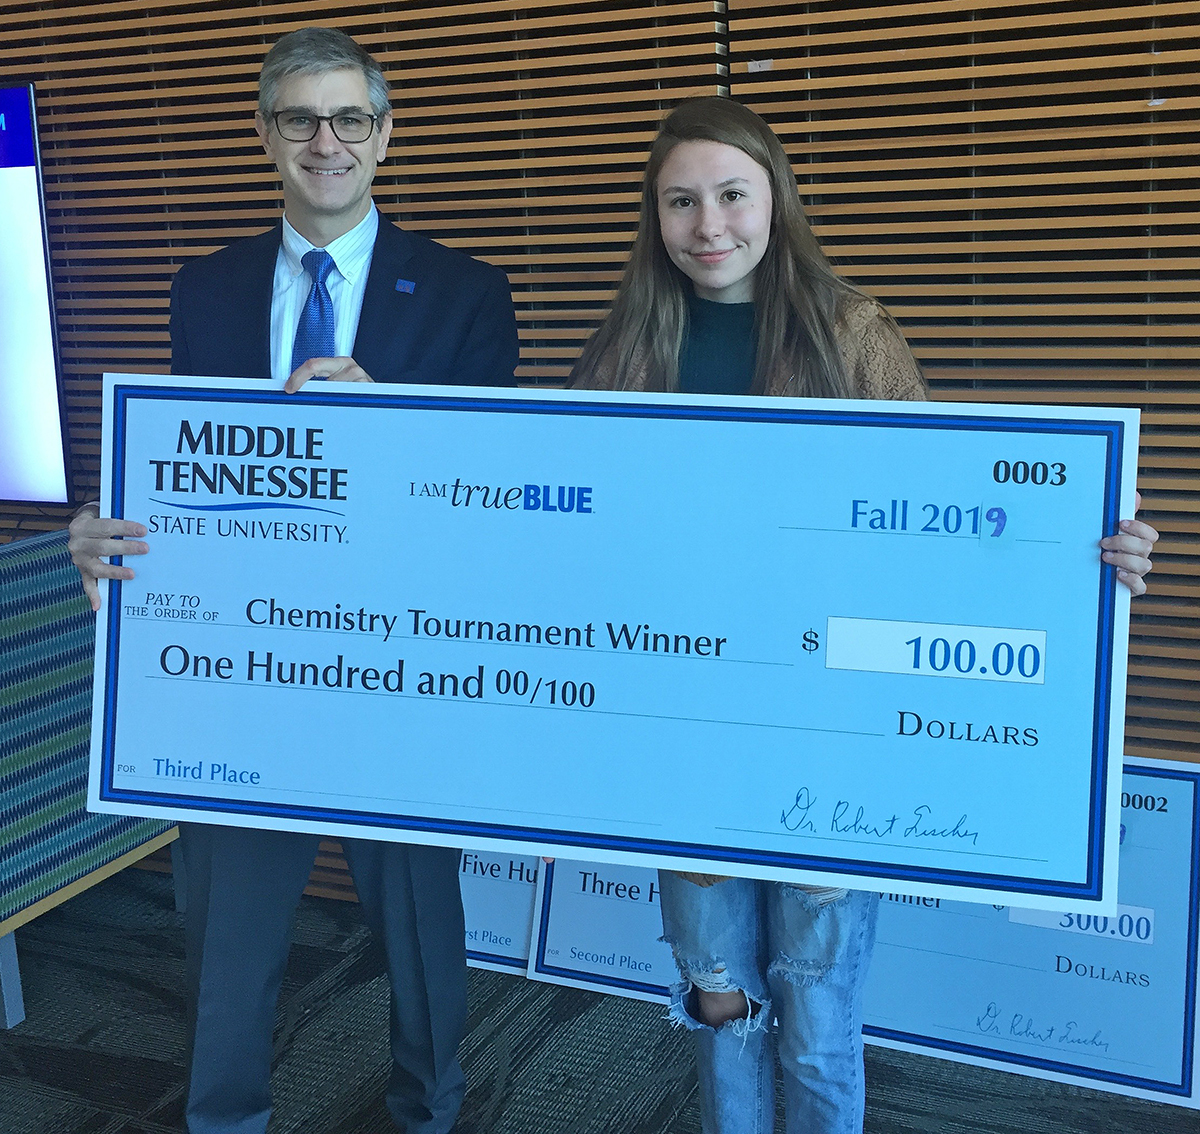 Independence High School senior Lauren Caldwell, right, recently received a $1,000 MTSU chemistry scholarship and $100 cash prize from department Chair Greg Van Patten for placing third in the recent Chemistry Scholarship Tournament in the Science Building. (Submitted photo)